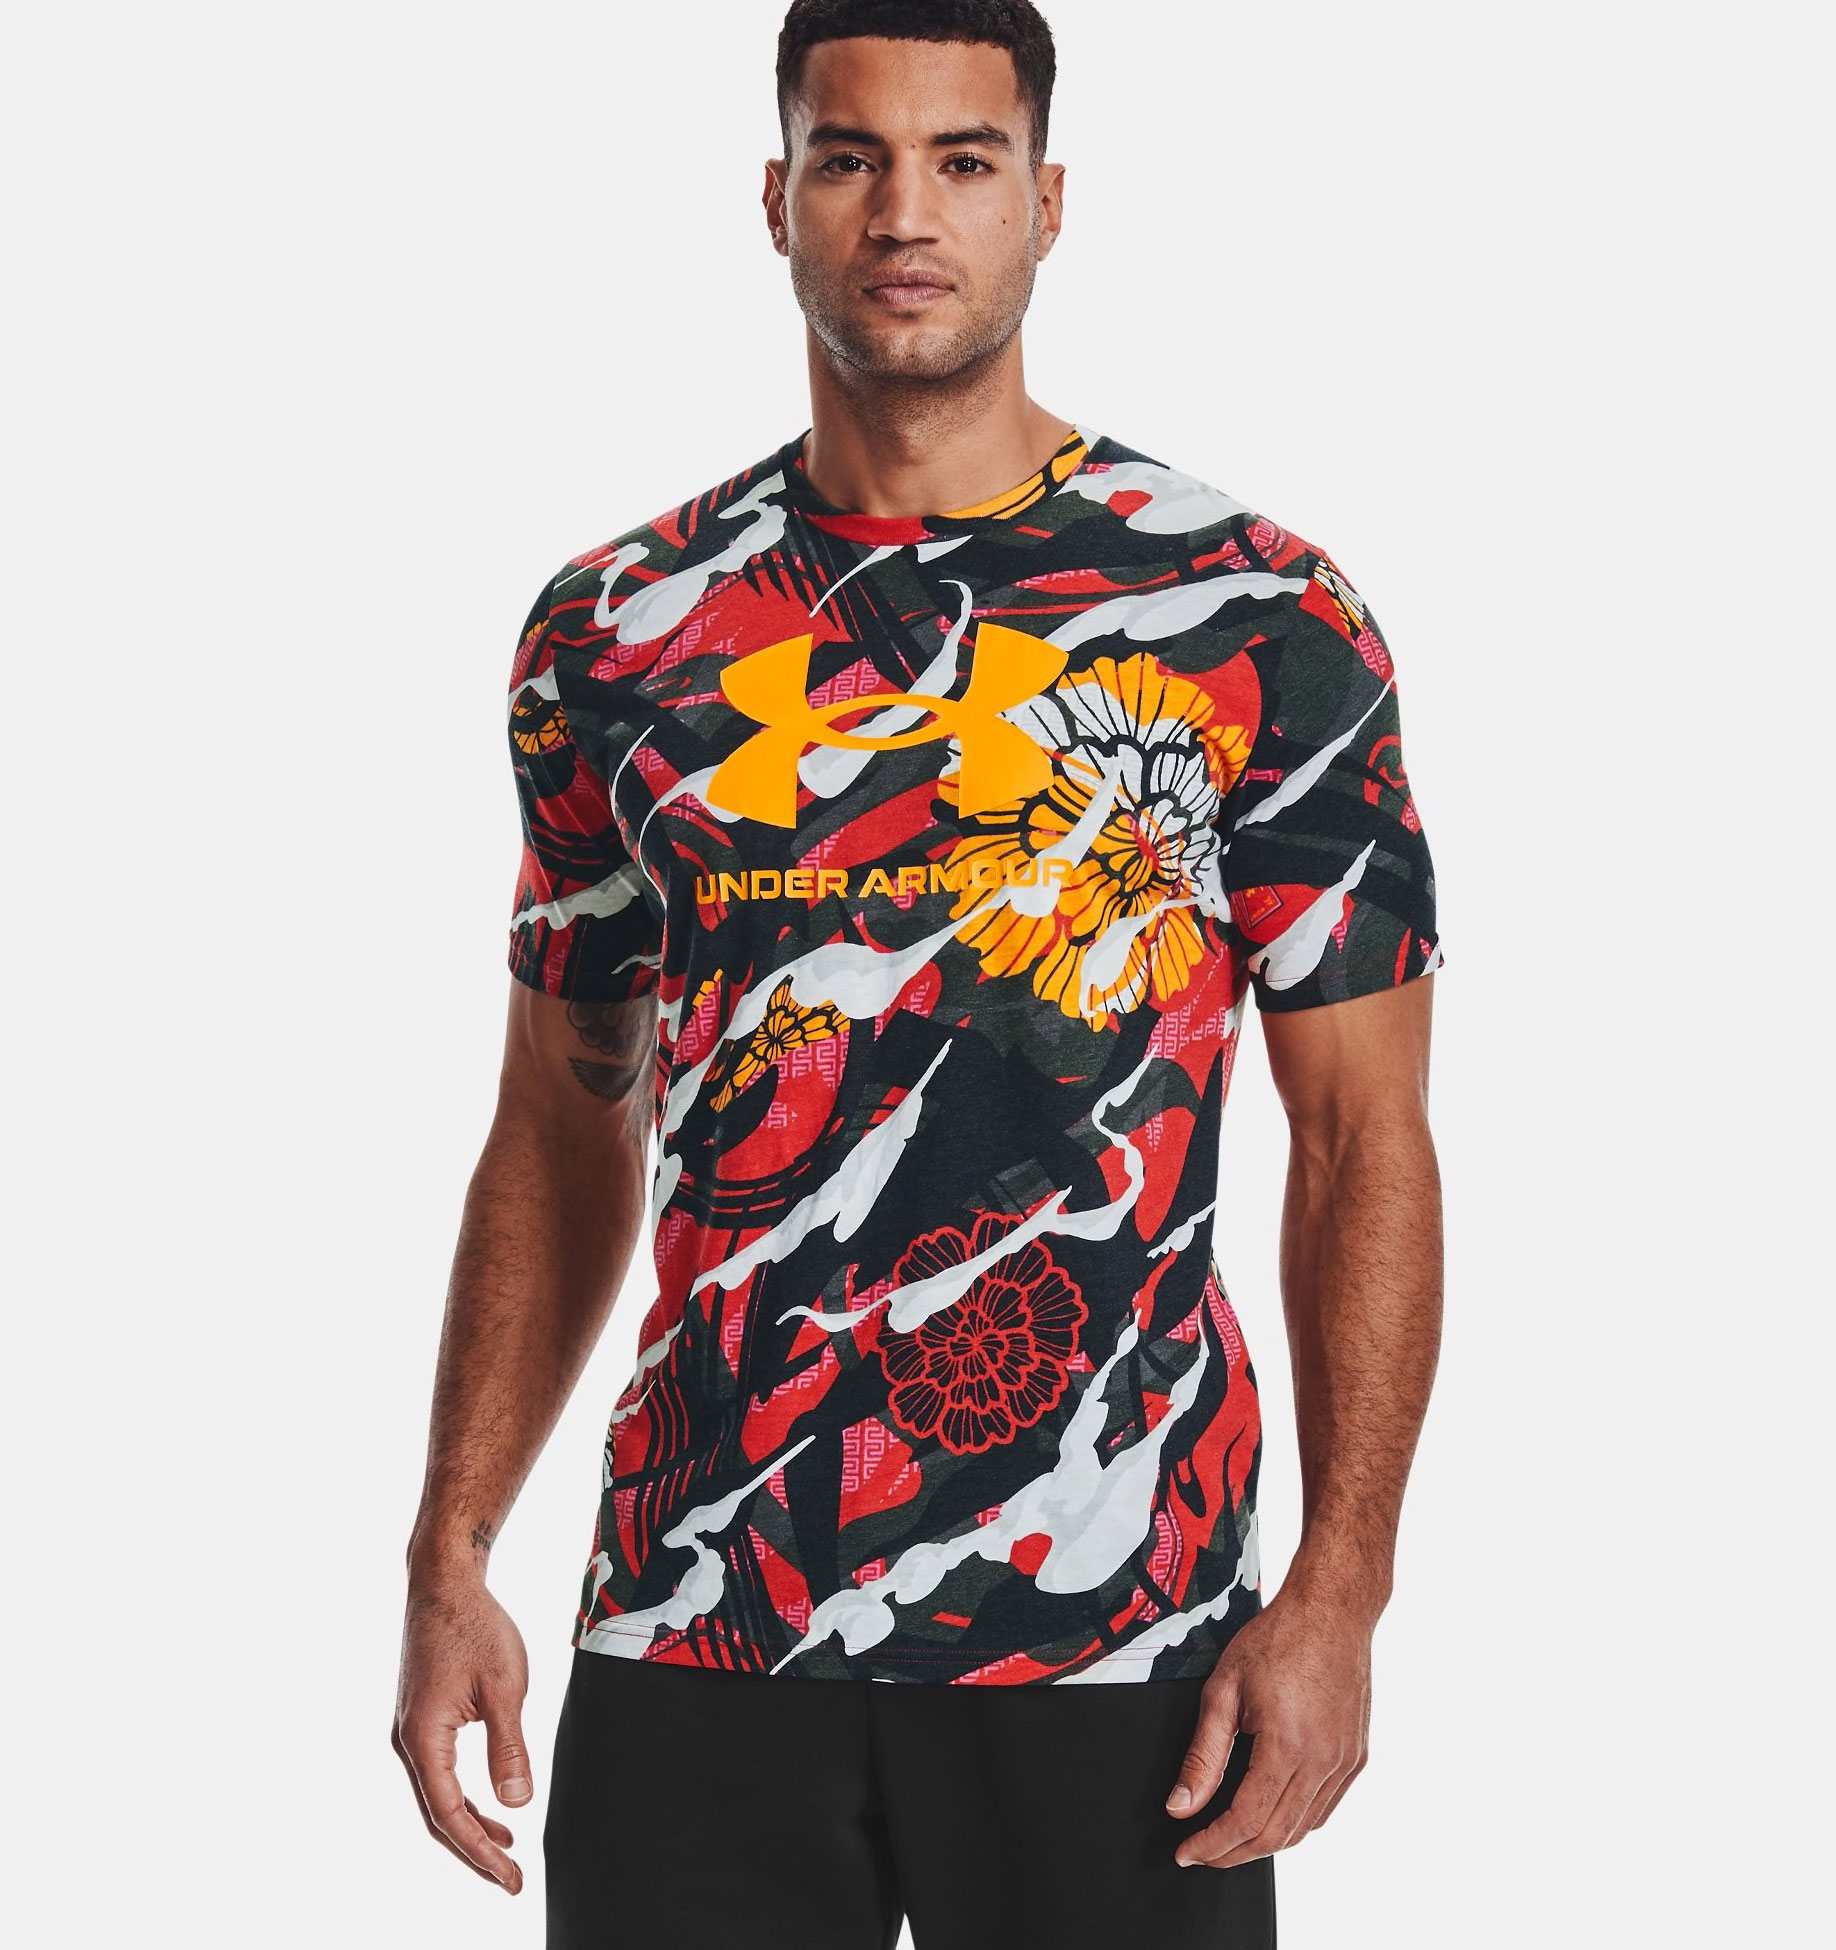 under-armour-chinese-new-year-curry-8-cny-shirt